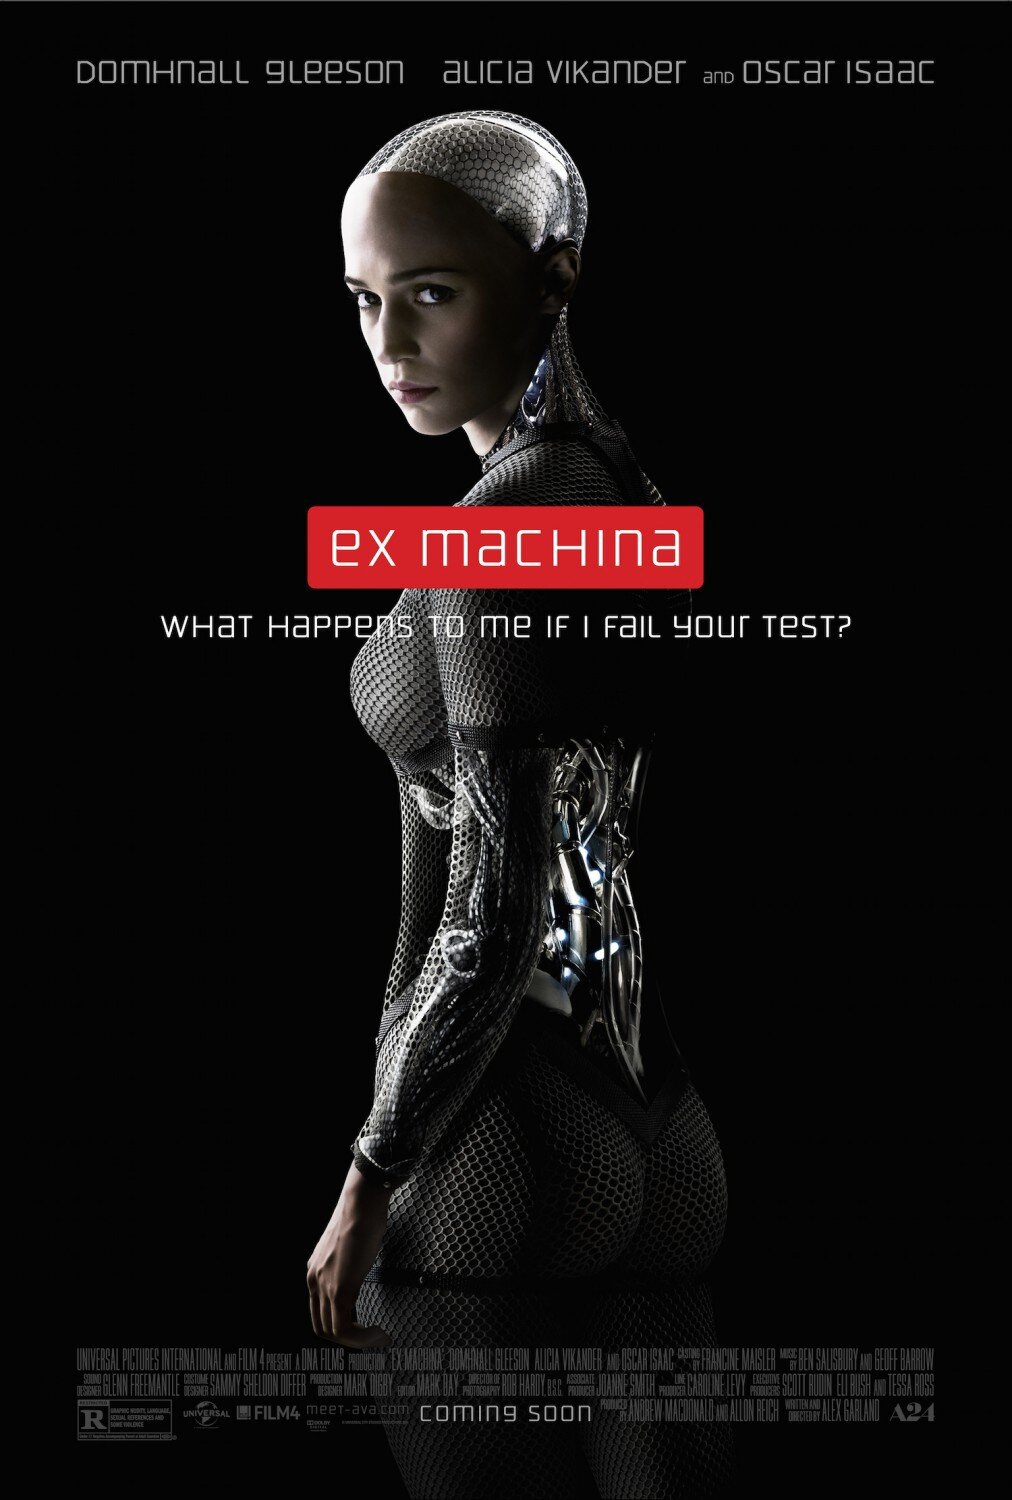 Ex Machina (2014) - Directed By: Alex GarlandStarring: Alicia Vikander, Domhnall Gleeson, Oscar IsaacRated: RRun Time: 1h 48mTMM Score: 4 StarsStrengths: Acting, VFXWeakness: Domhnall Gleeson's Character